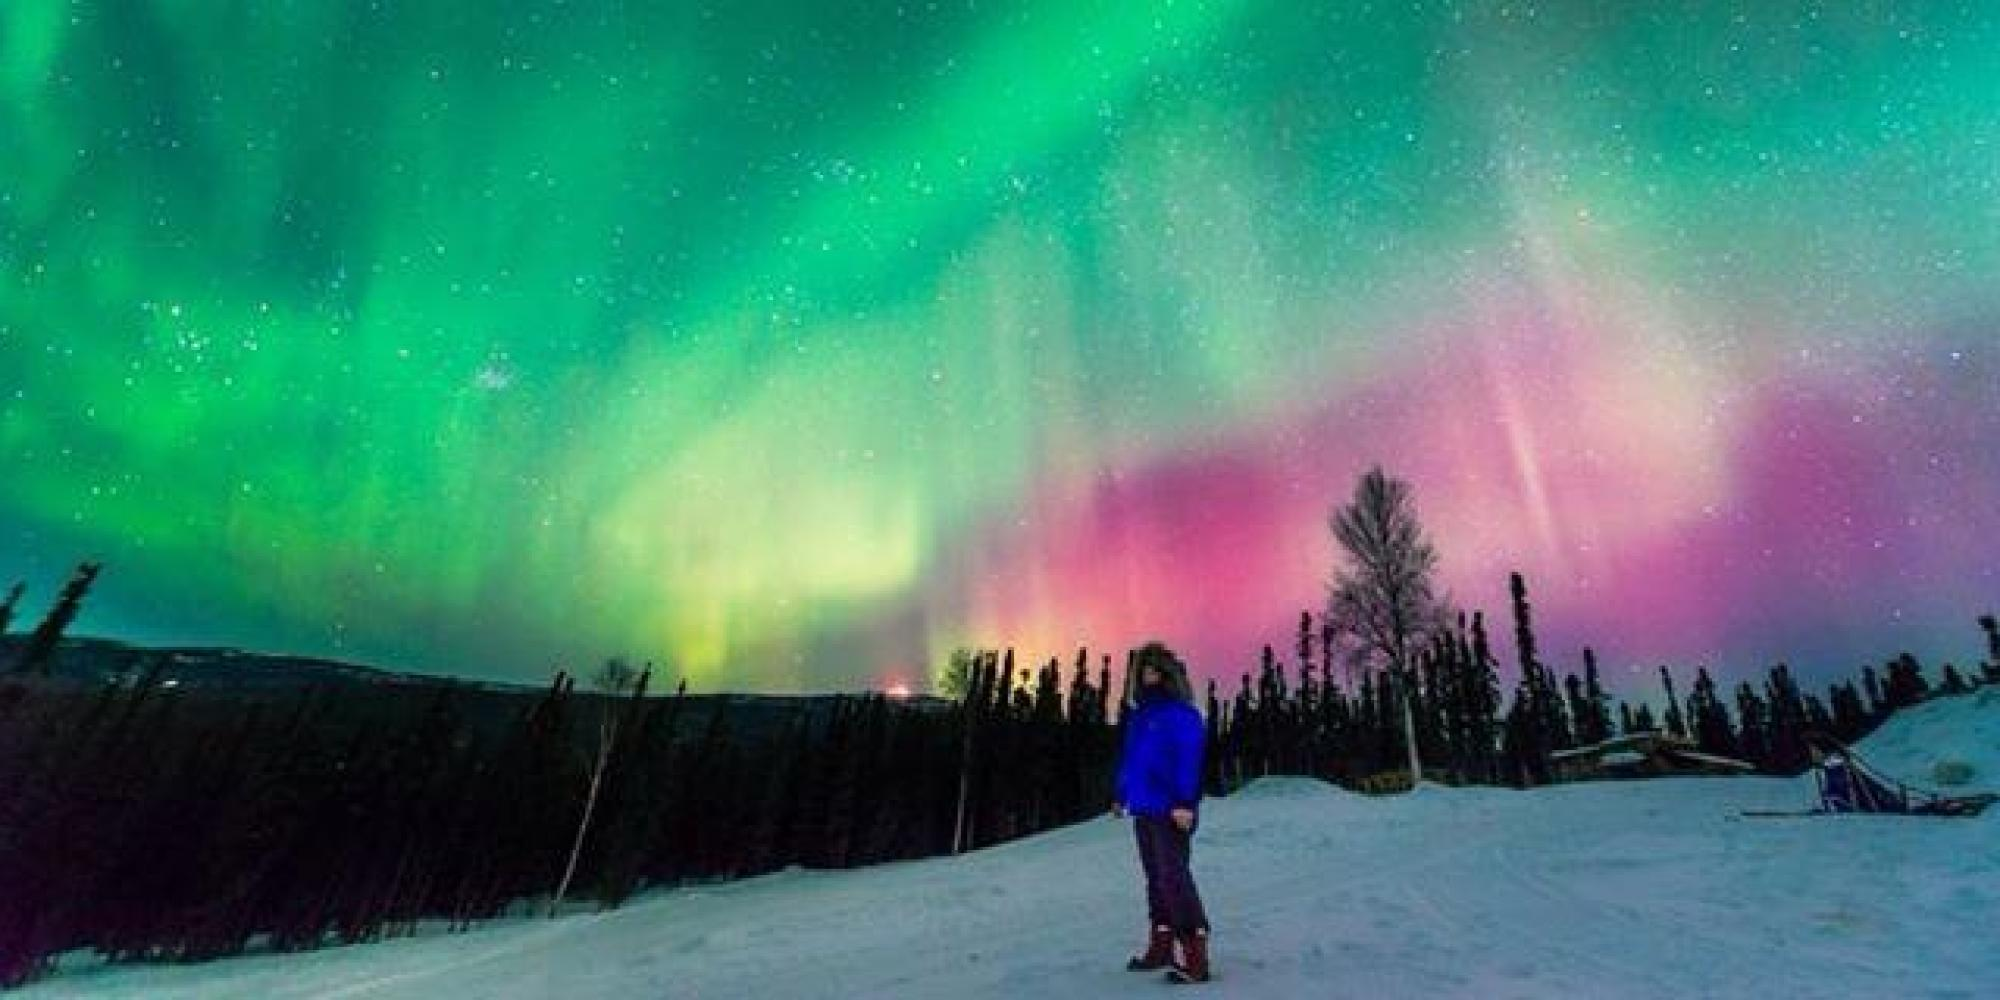 Charming If You Canu0027t Get To Alaska, This Dreamy Time Lapse Video Is A Great Way To  See The Northern Lights | HuffPost